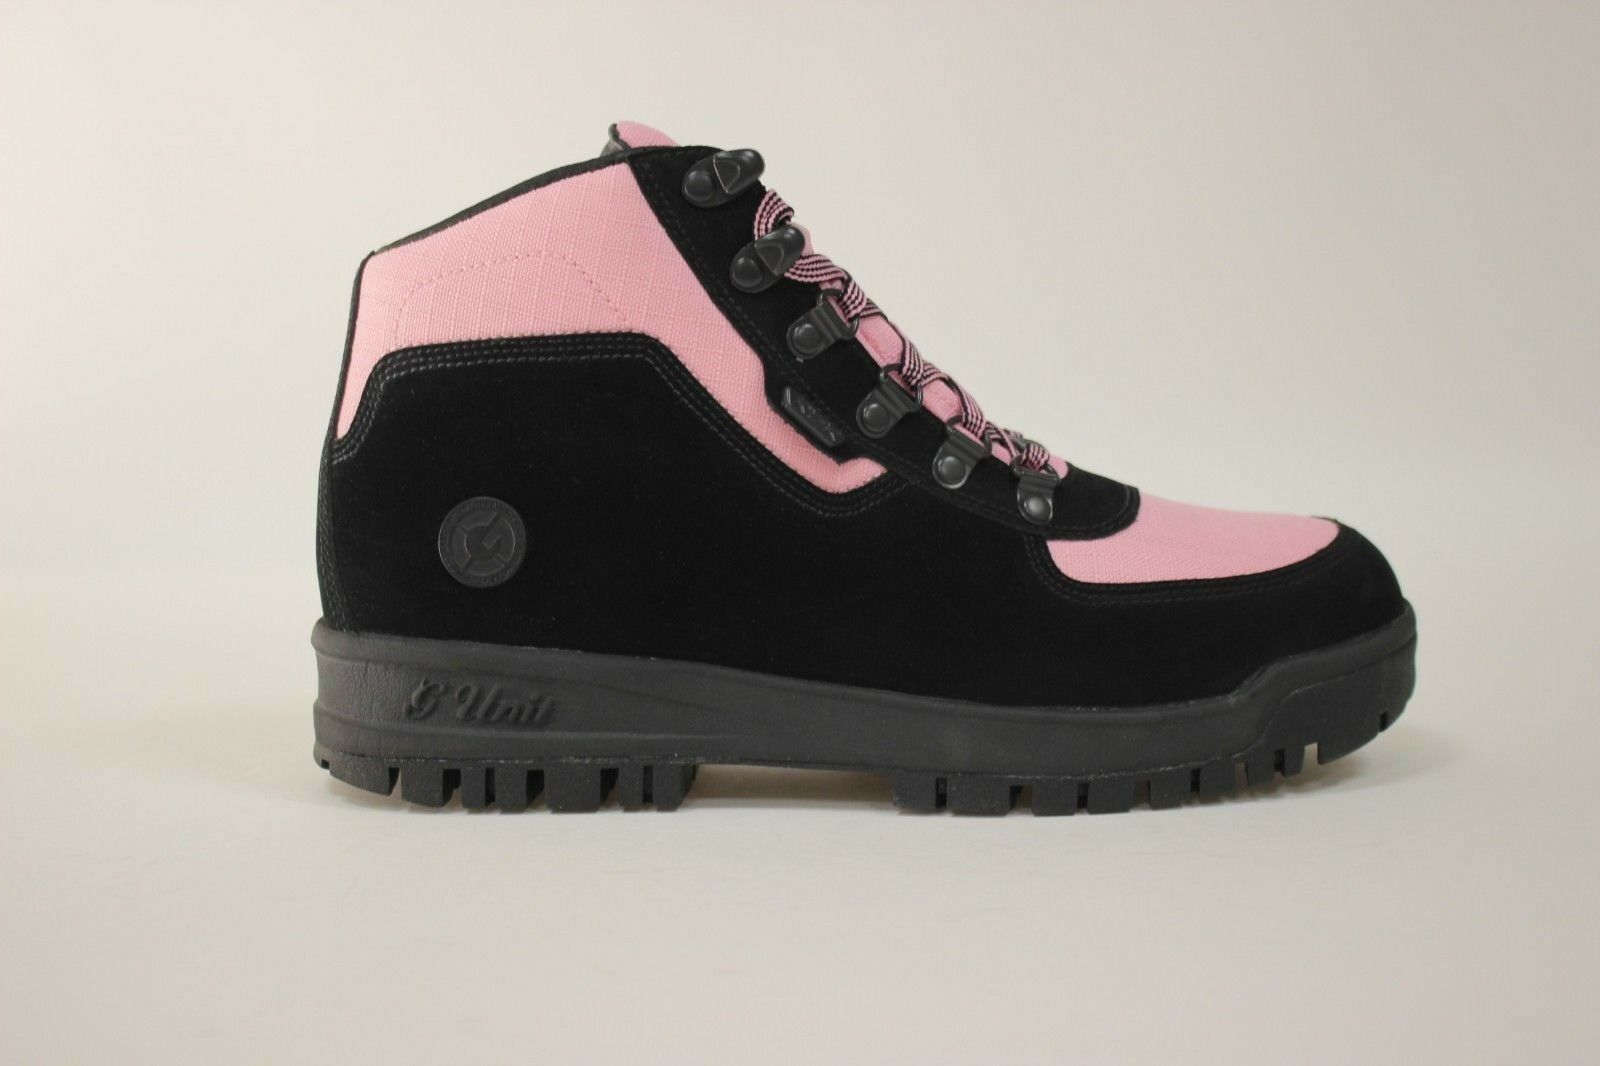 Reebok Women's G-Unit Boots  NEW AUTHENTIC Black / Pink 117796